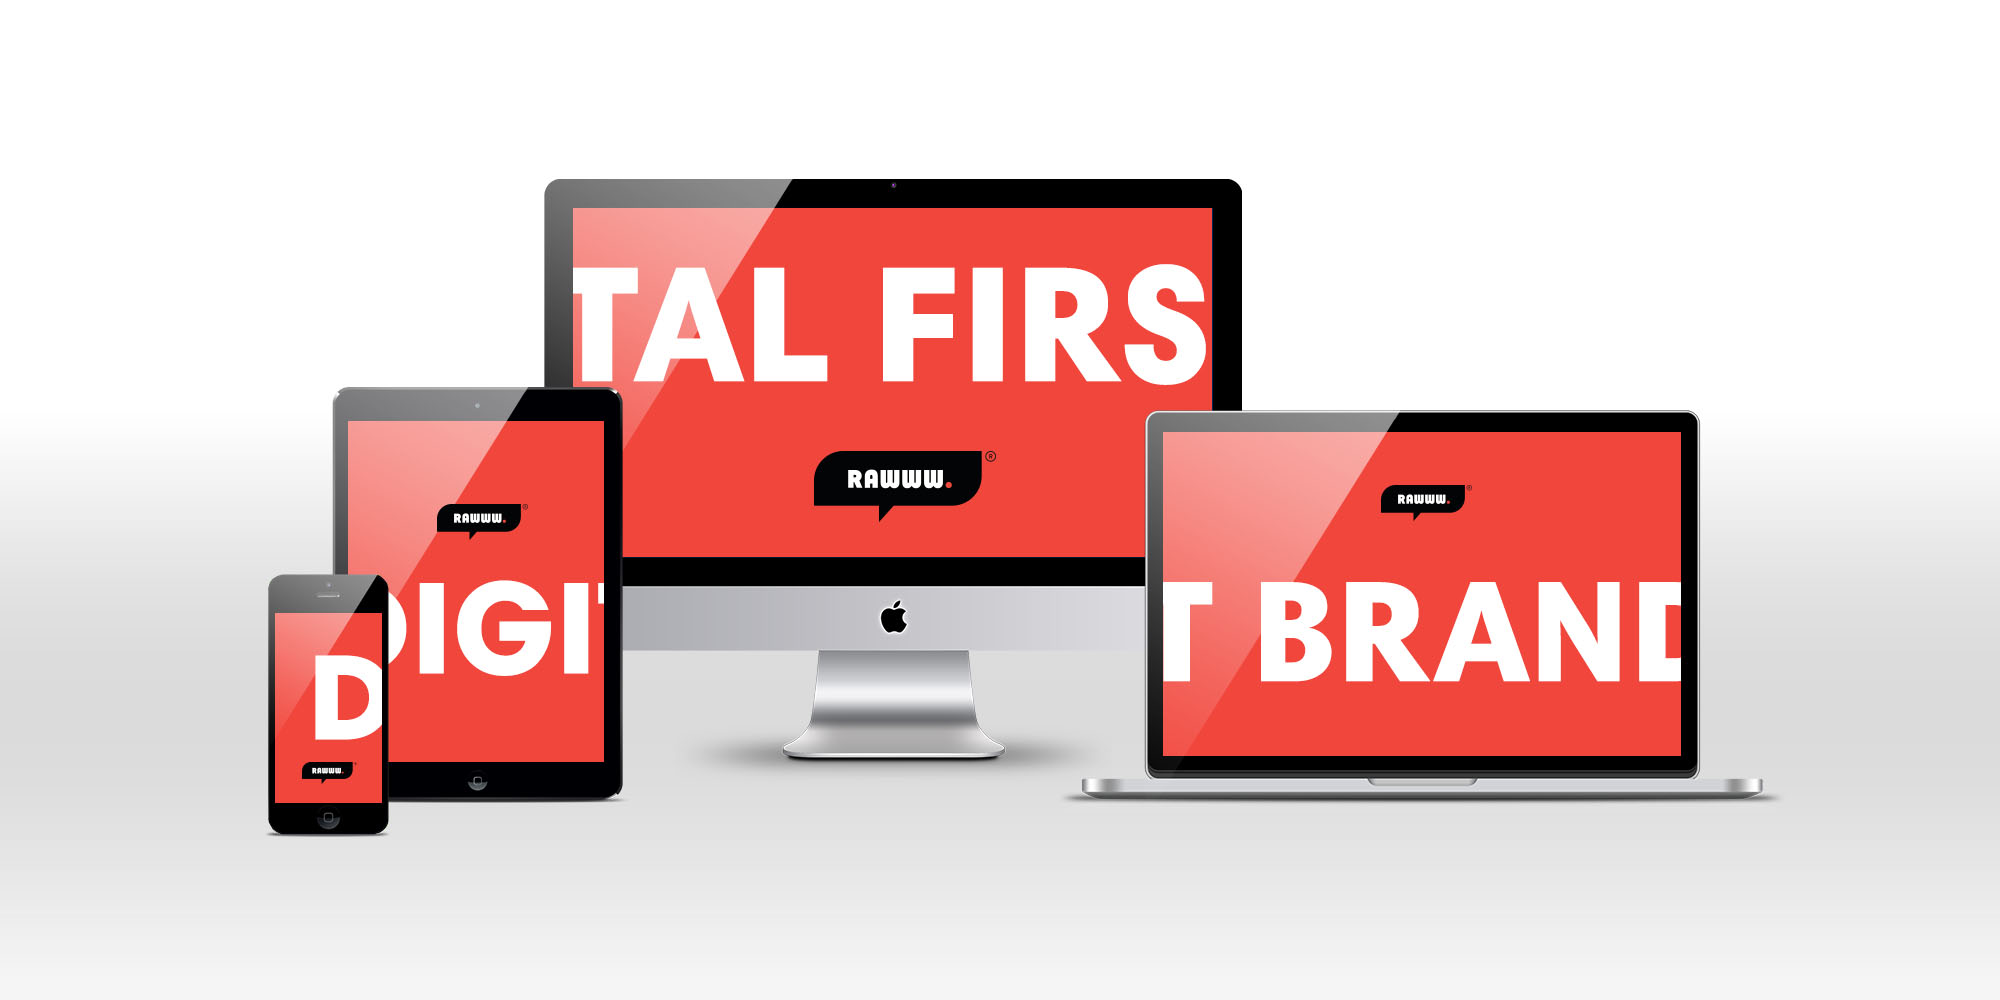 Choose Digital First for Strong Branding